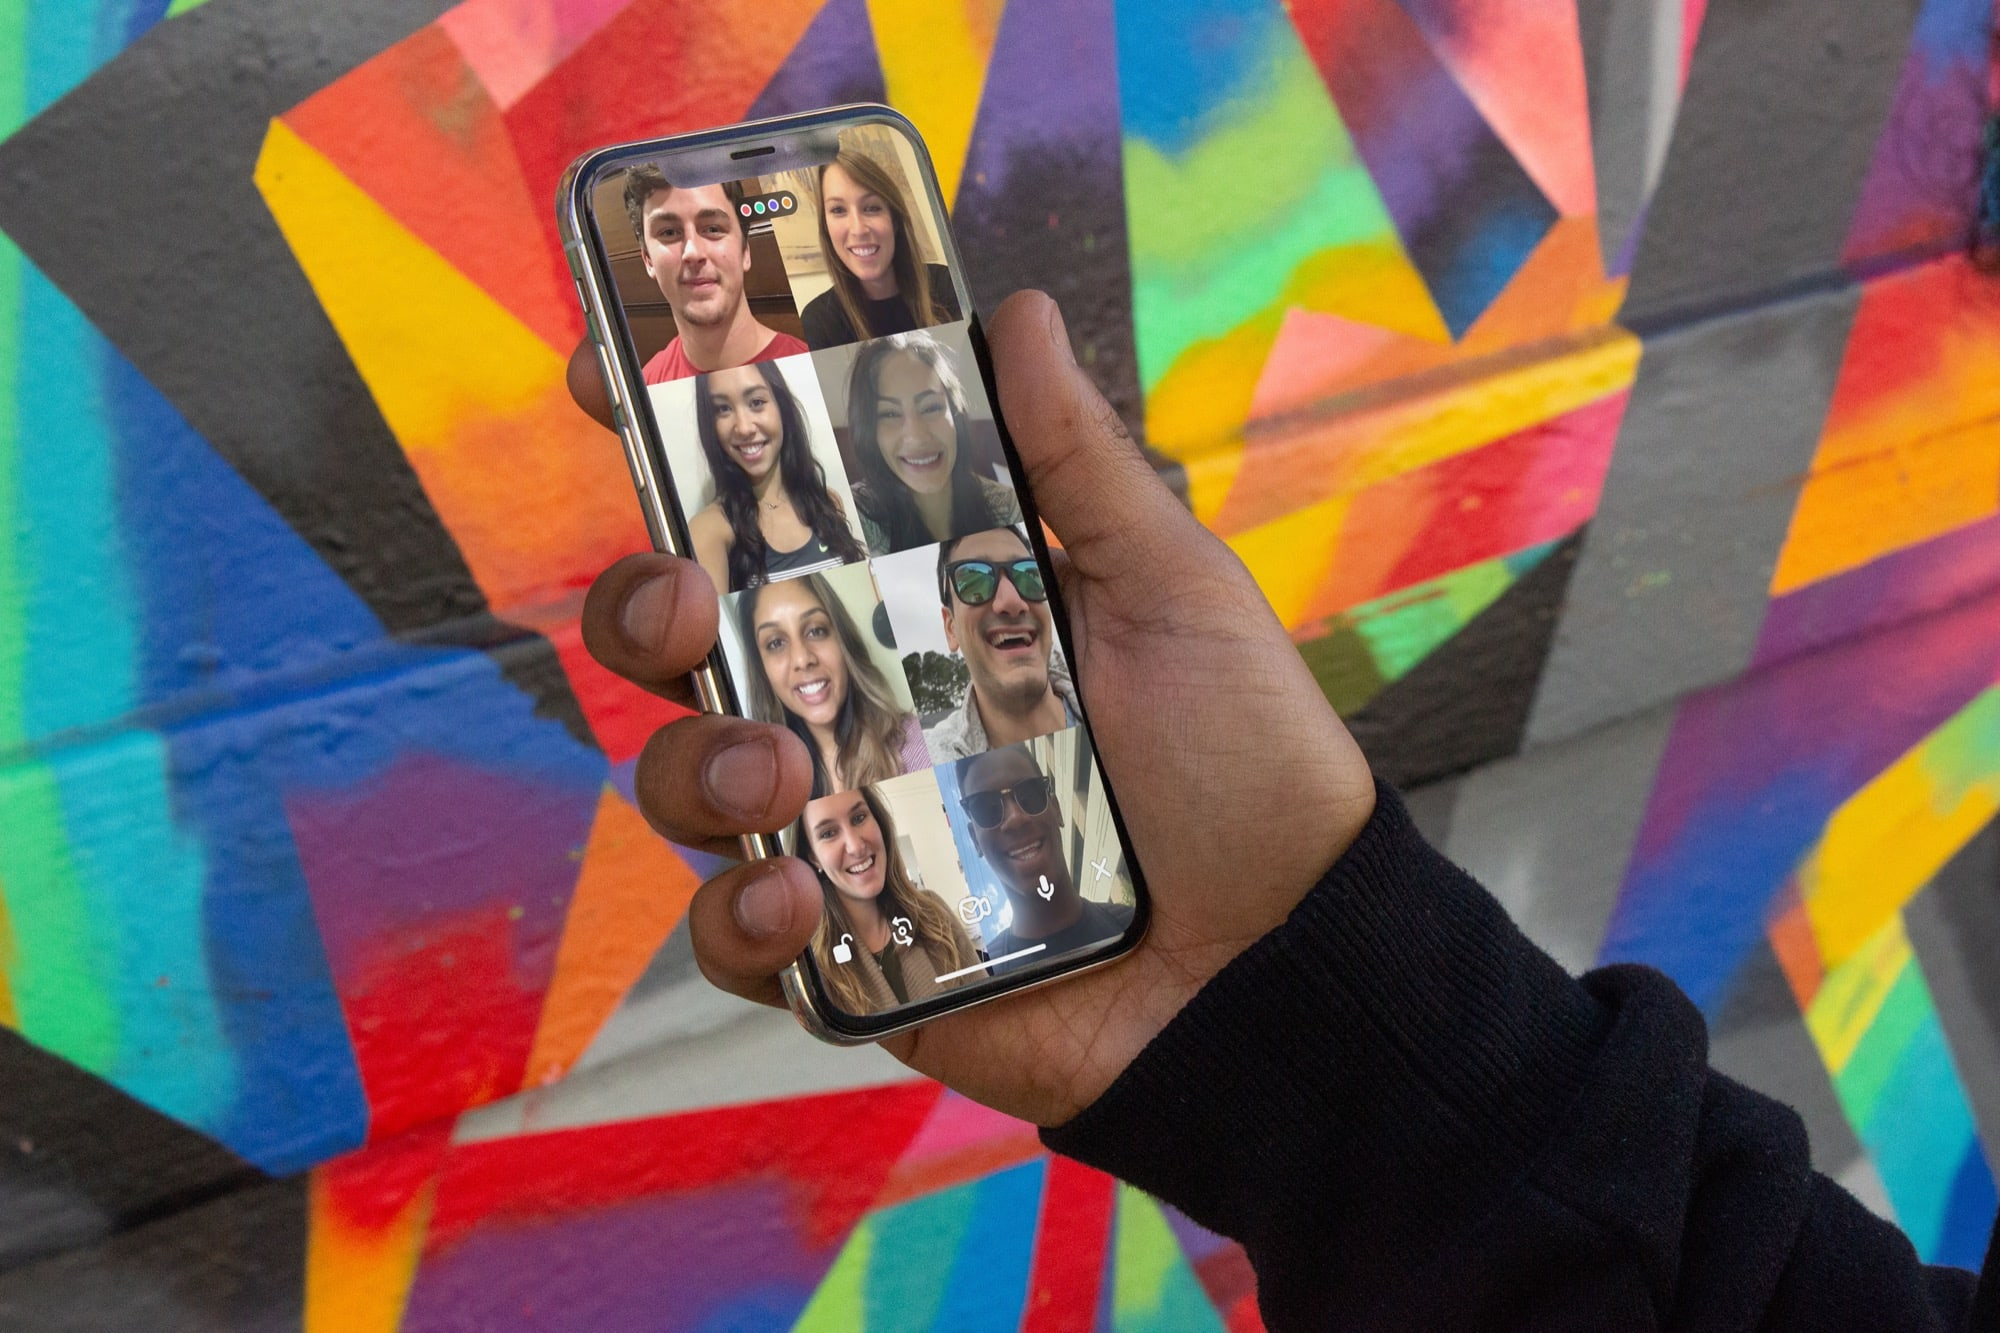 Alternatives to Zoom: Are you ready to ... Houseparty?